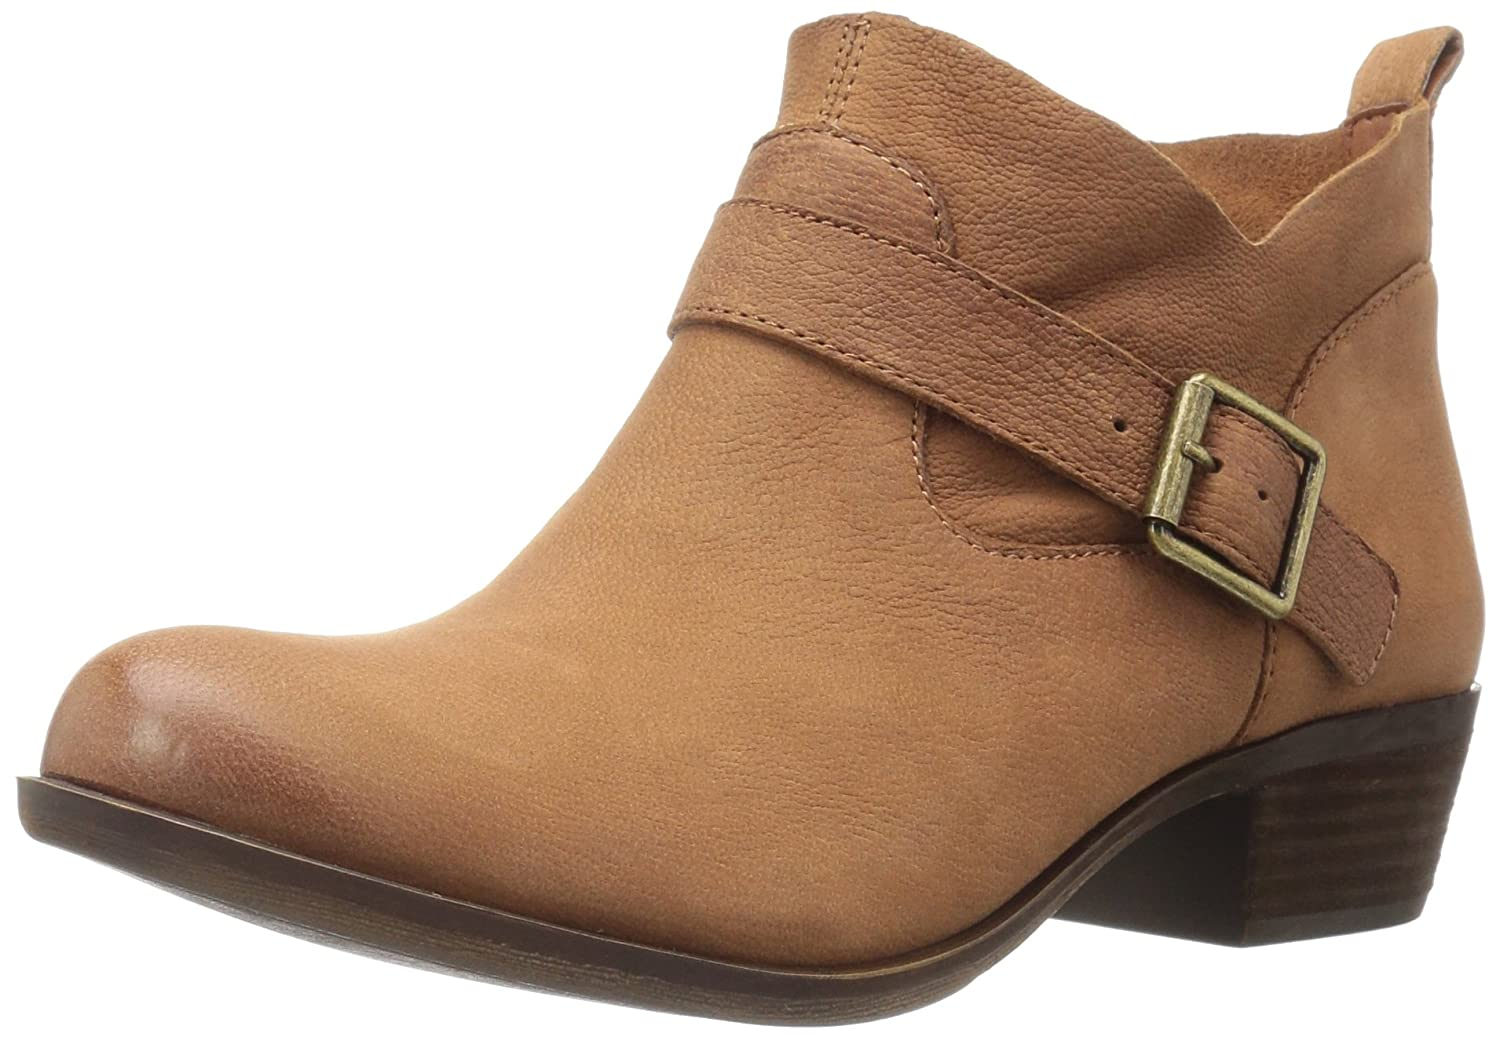 Lucky Brand Women's Boomer Boot B01FXC1CO2 8 B(M) US|Whiskey Brown